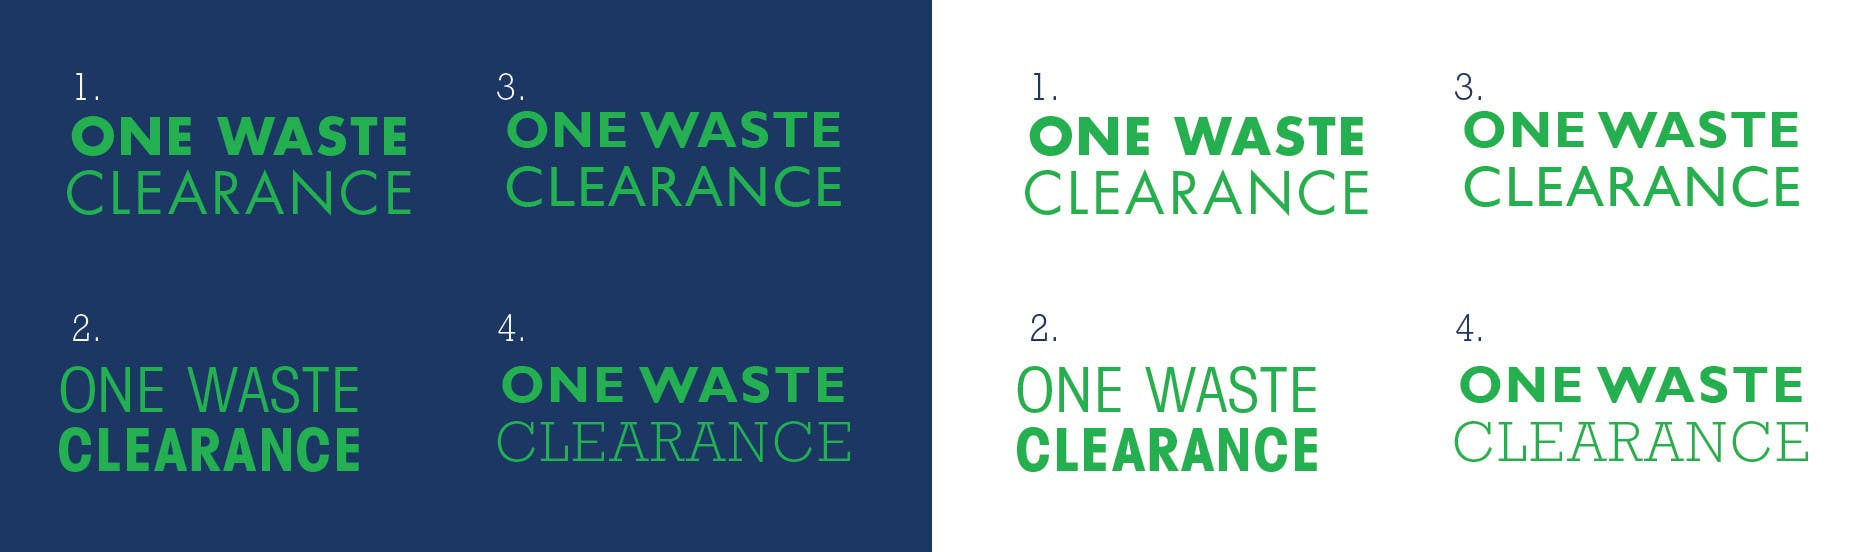 Proposition n°3 du concours Design a Logo for a construction and waste clearance company